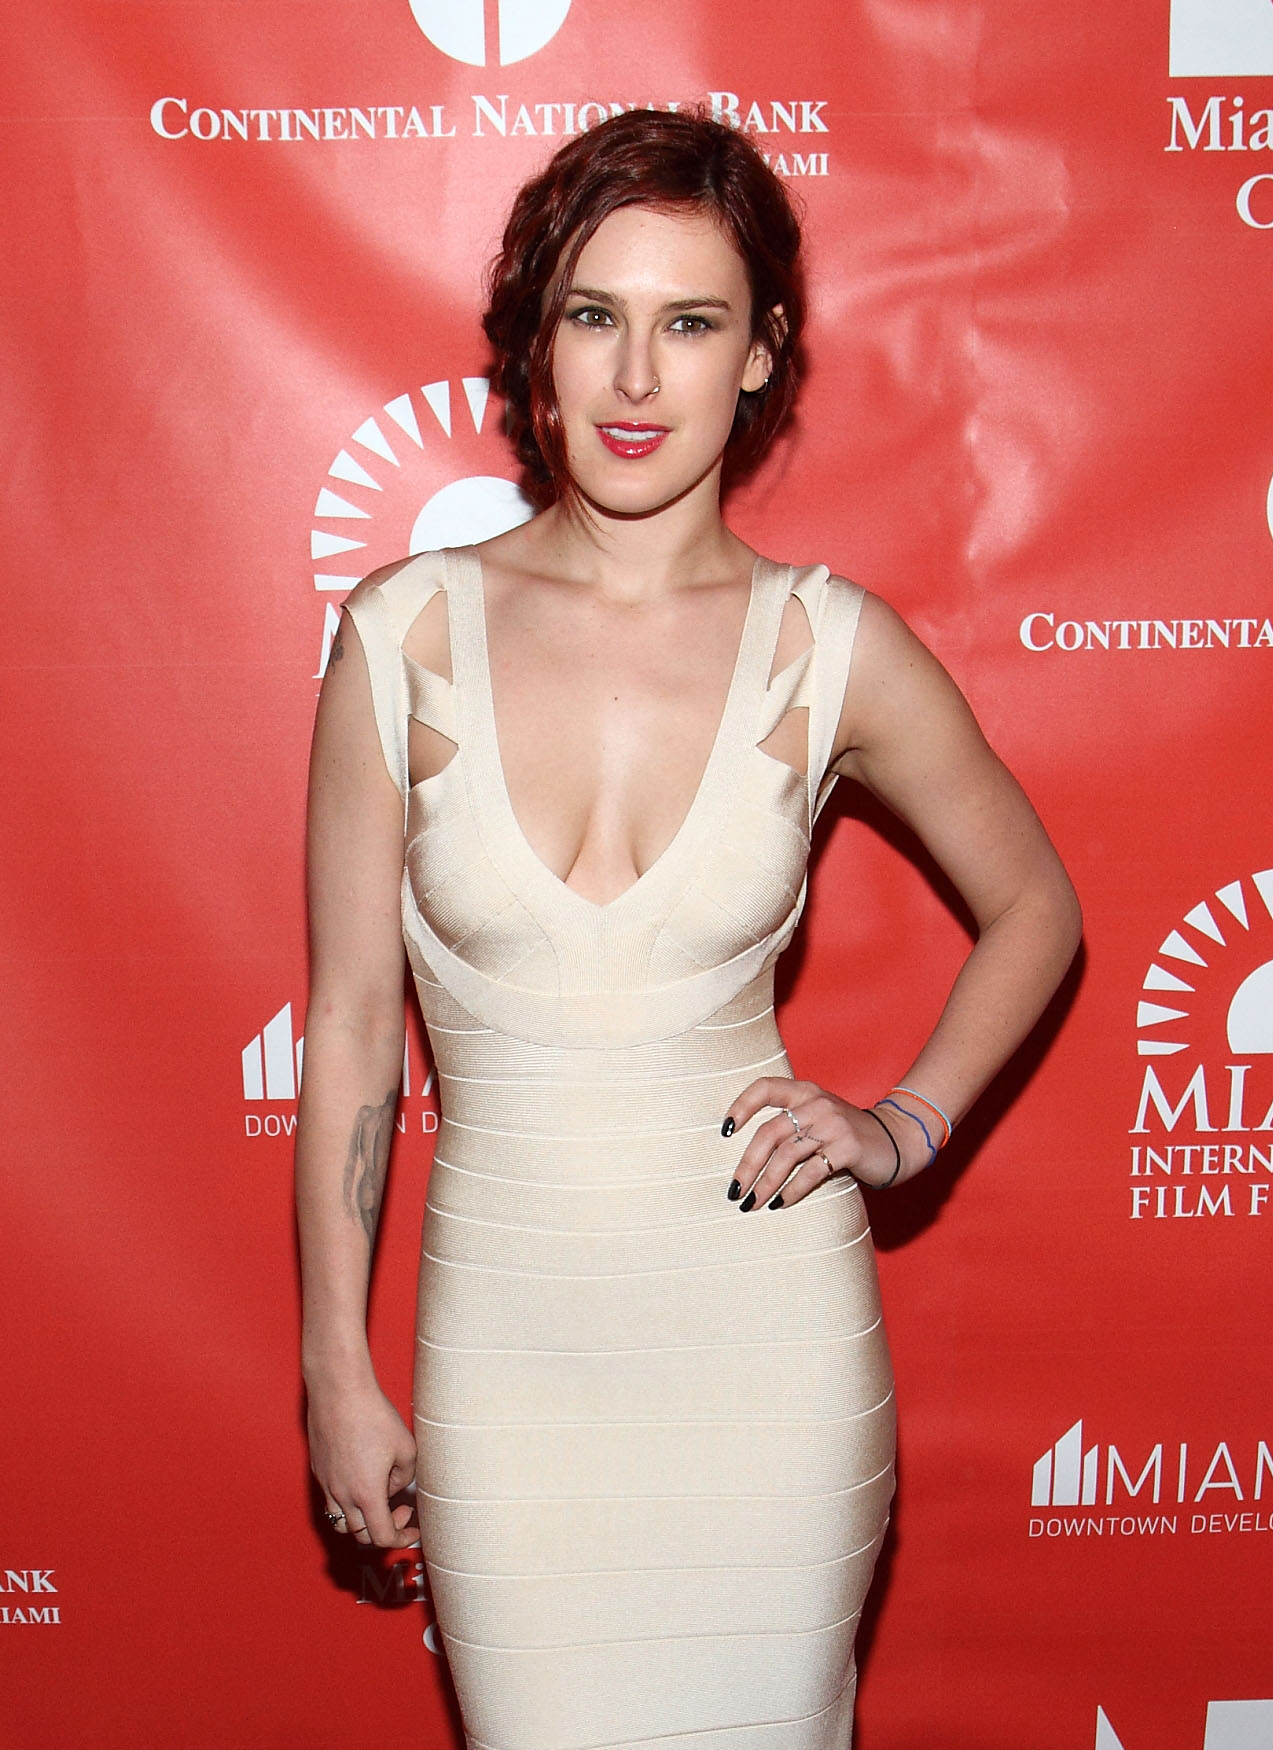 Rumer Willis Rumer Willis new photo